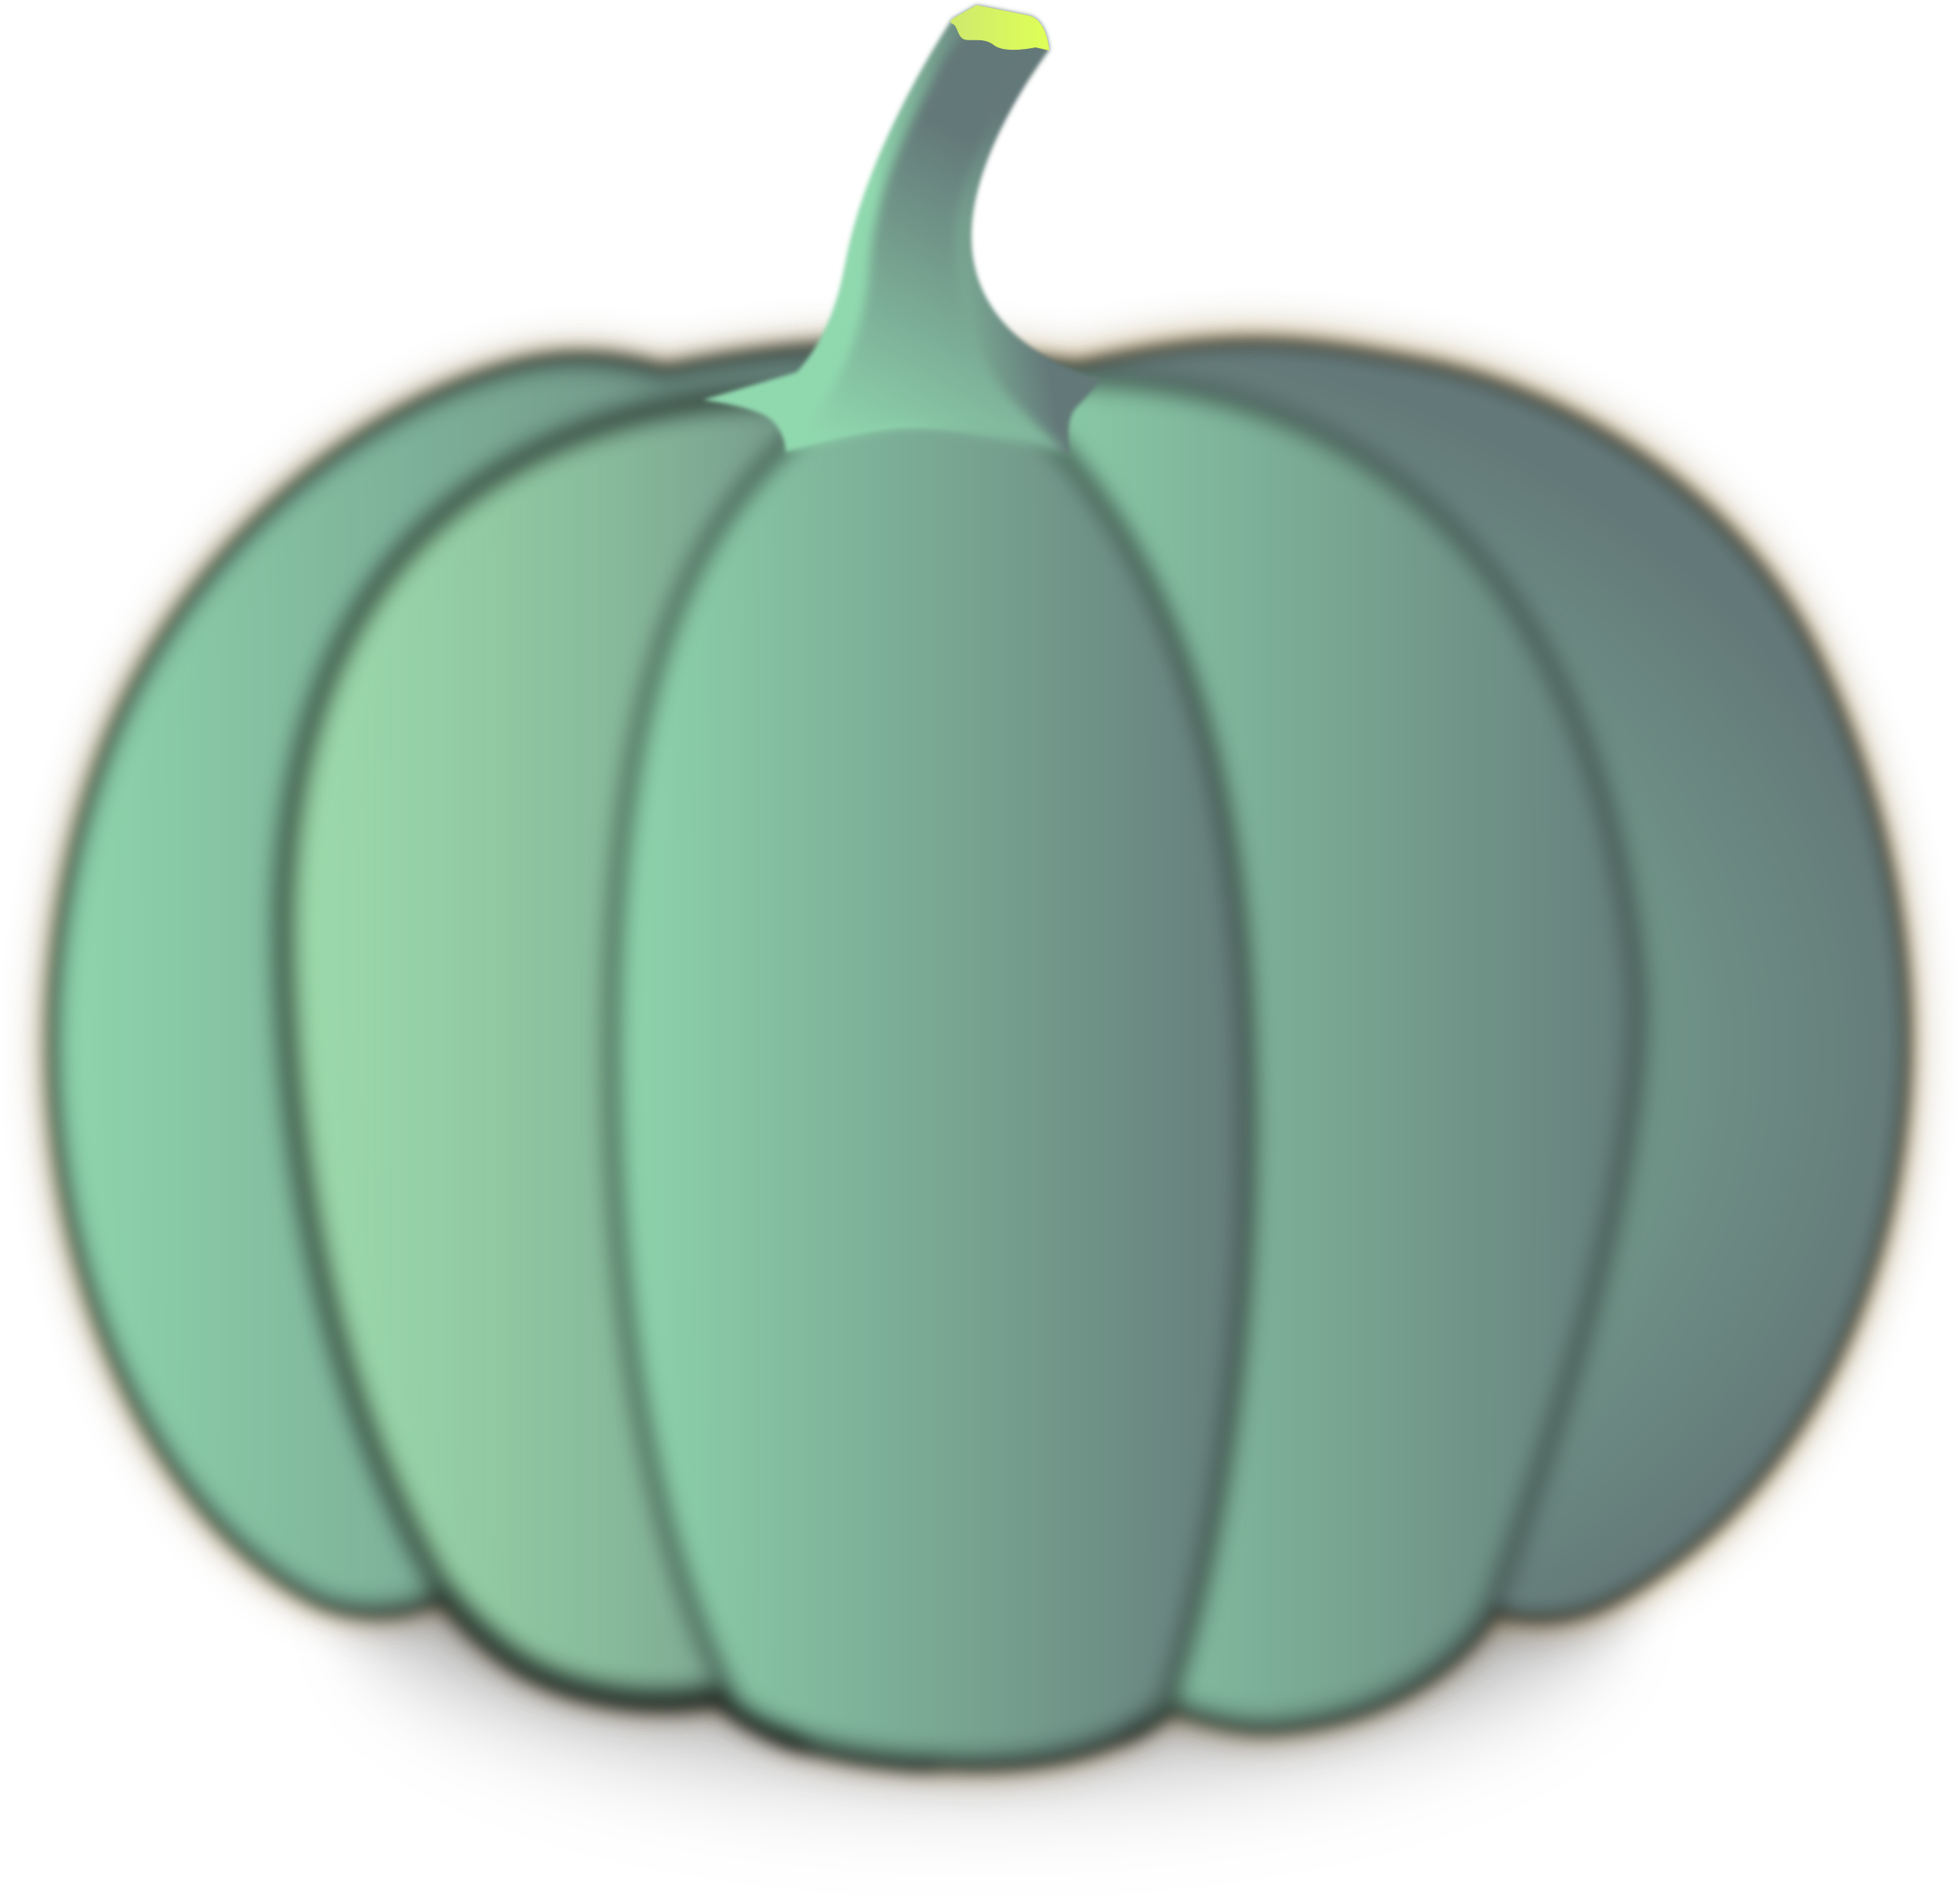 Little green pumpkin clipart picture royalty free library Clipart - A crown pumpkin picture royalty free library